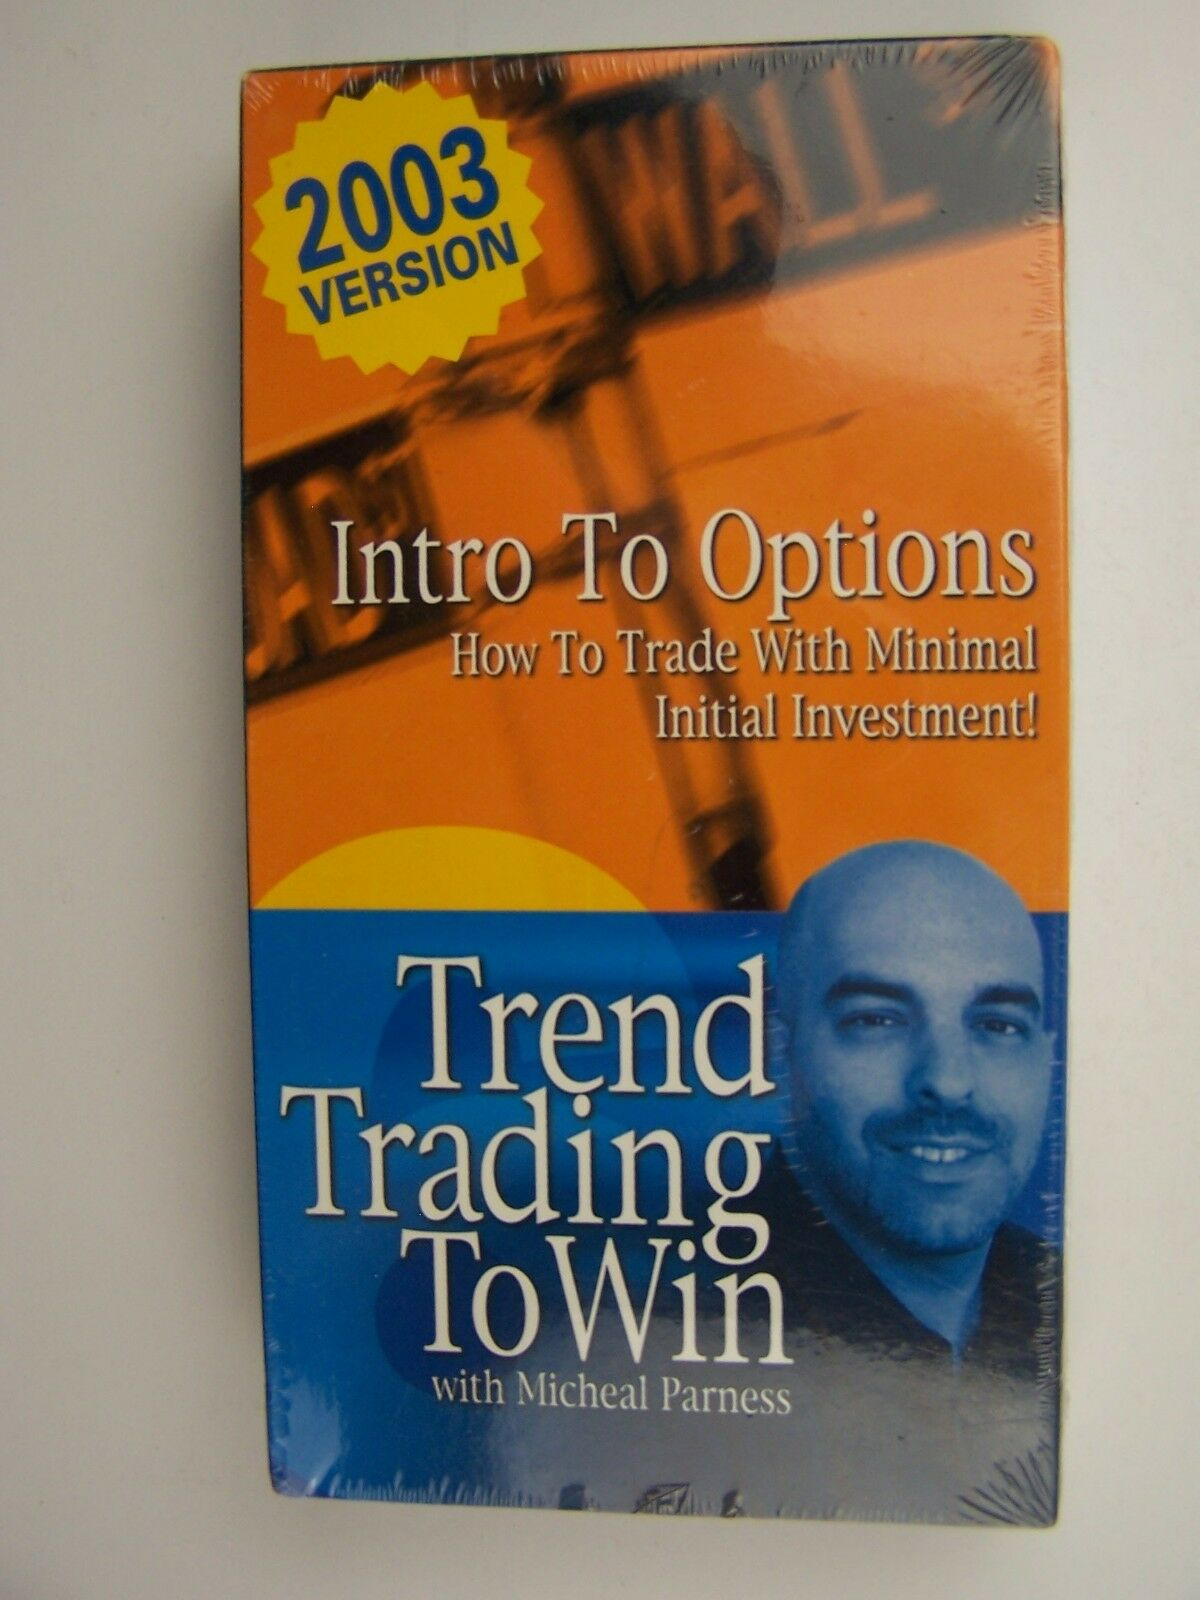 Intro To Options - How To Trade With Minimal Initial In